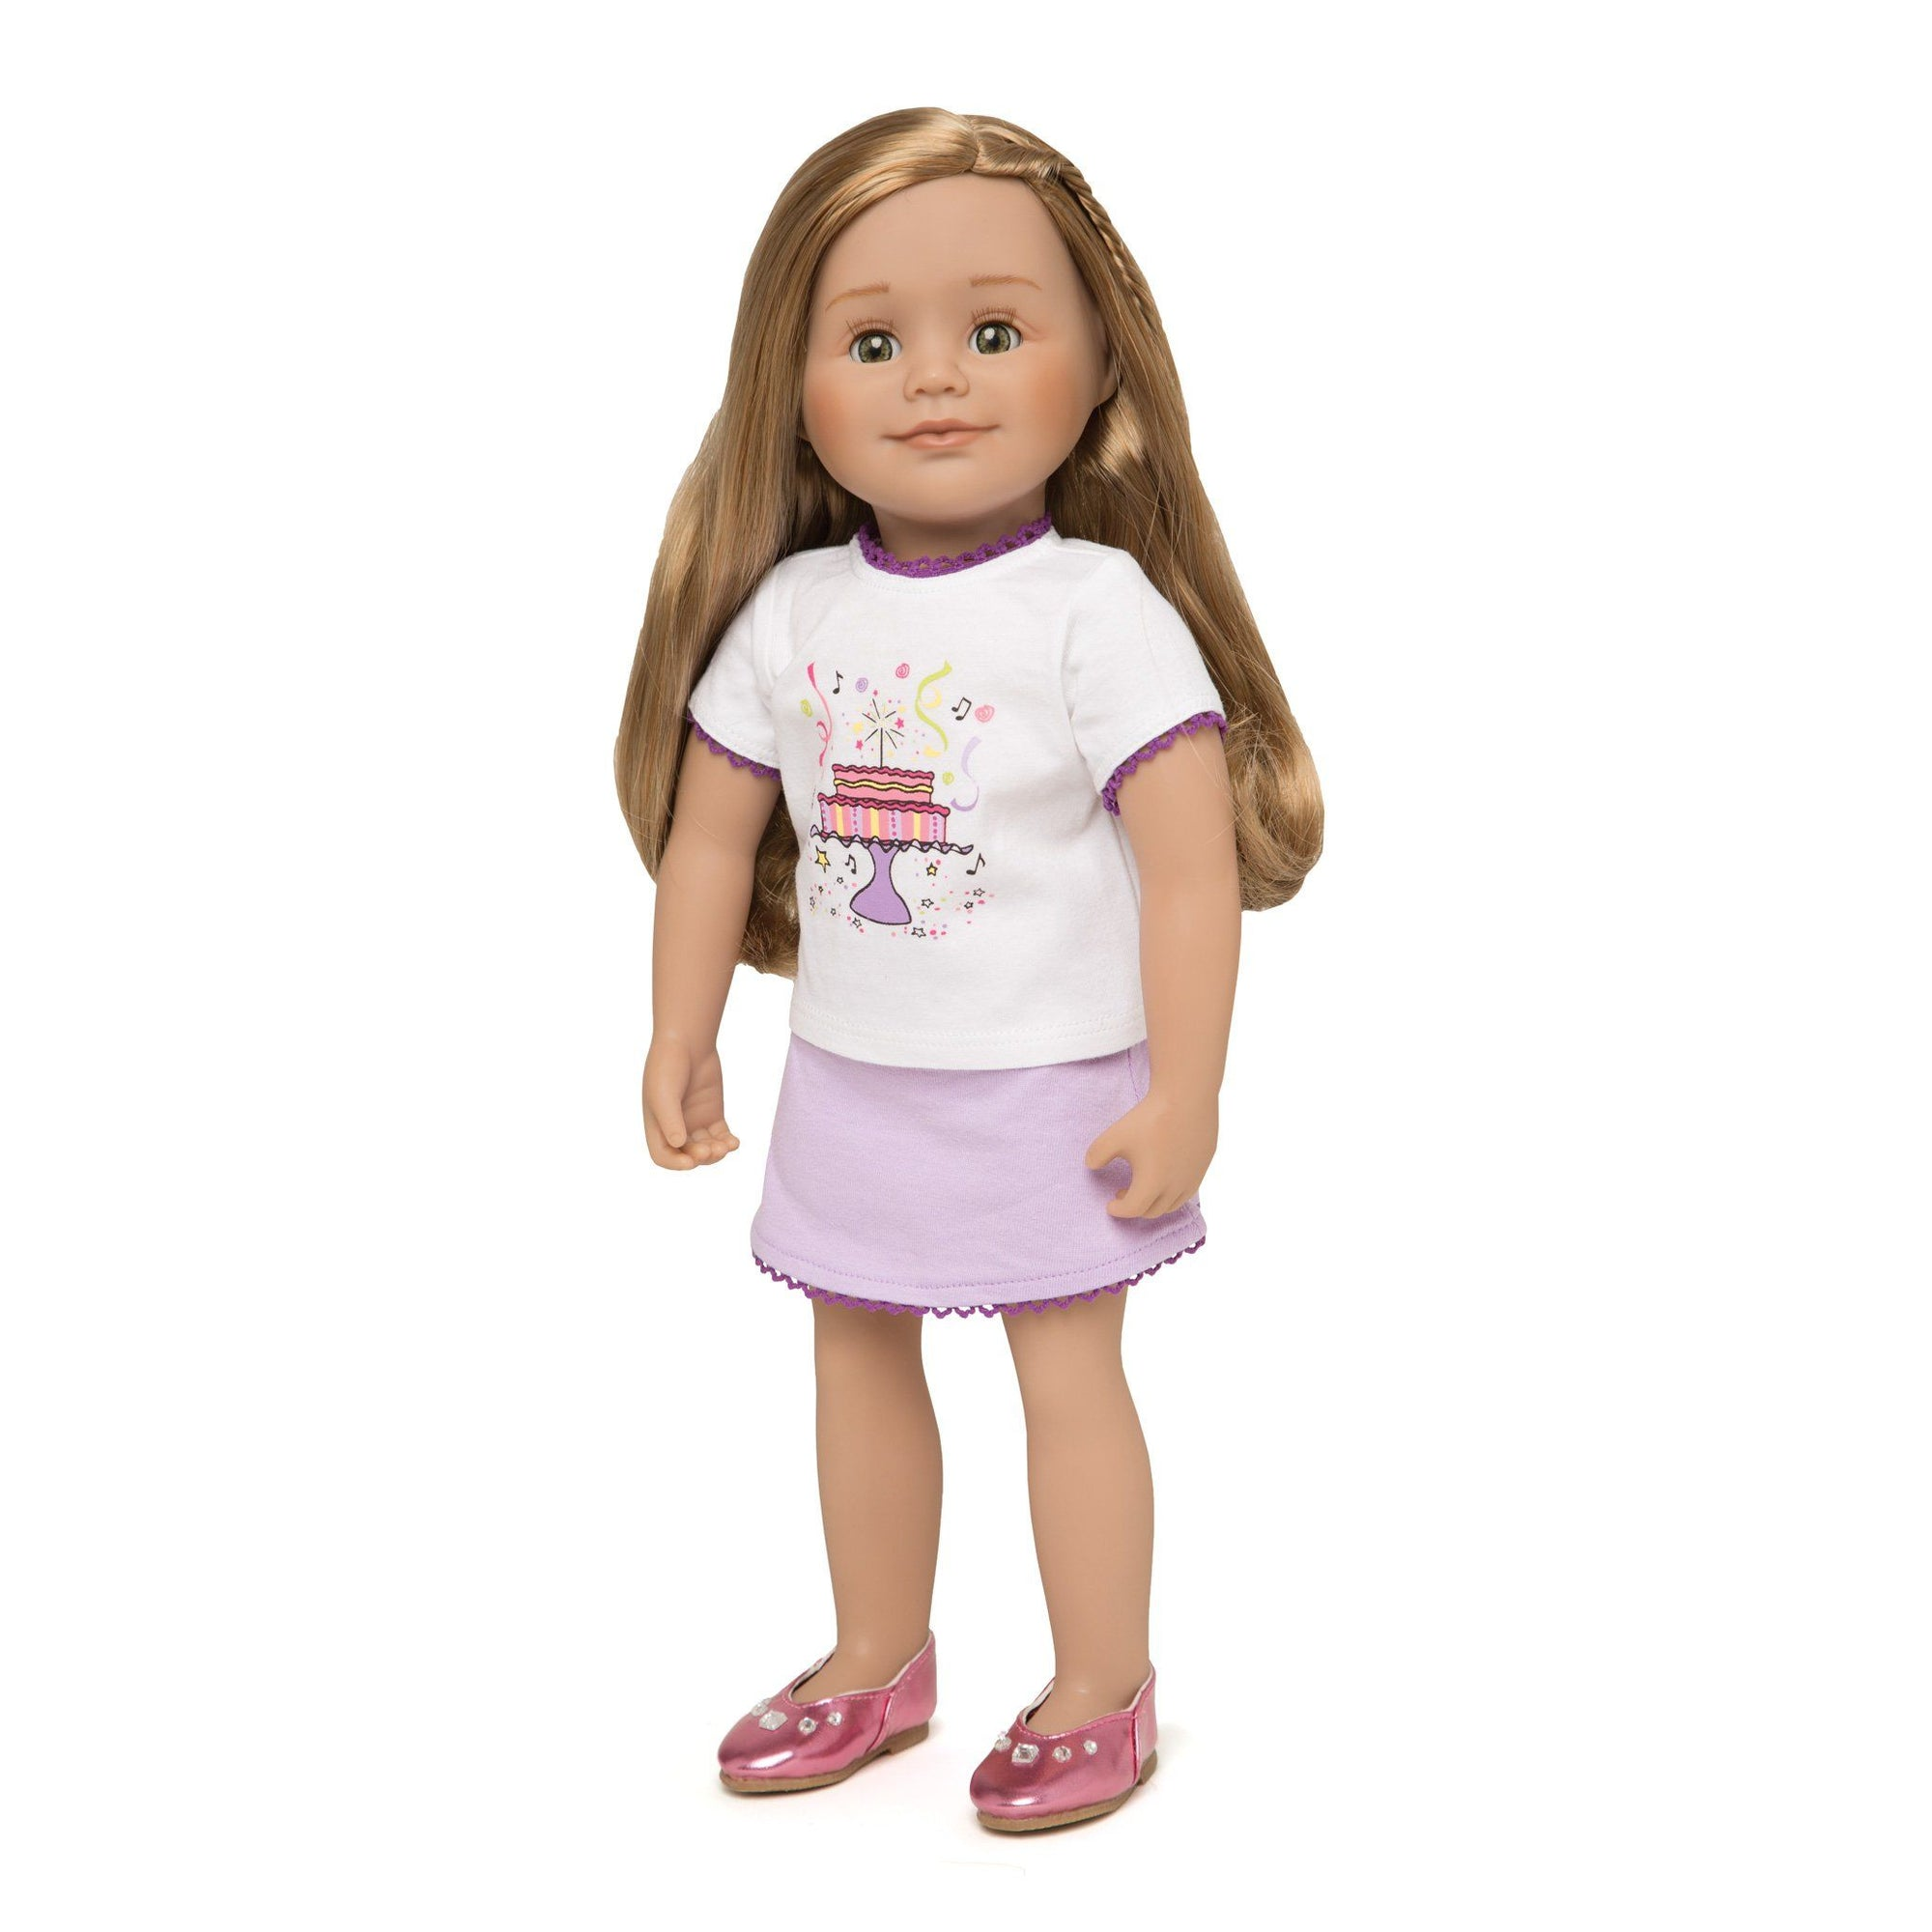 Set to Celebrate white t-shirt with purple lace trim and festive cake graphic, with light purple skirt fits all 18 inch dolls.